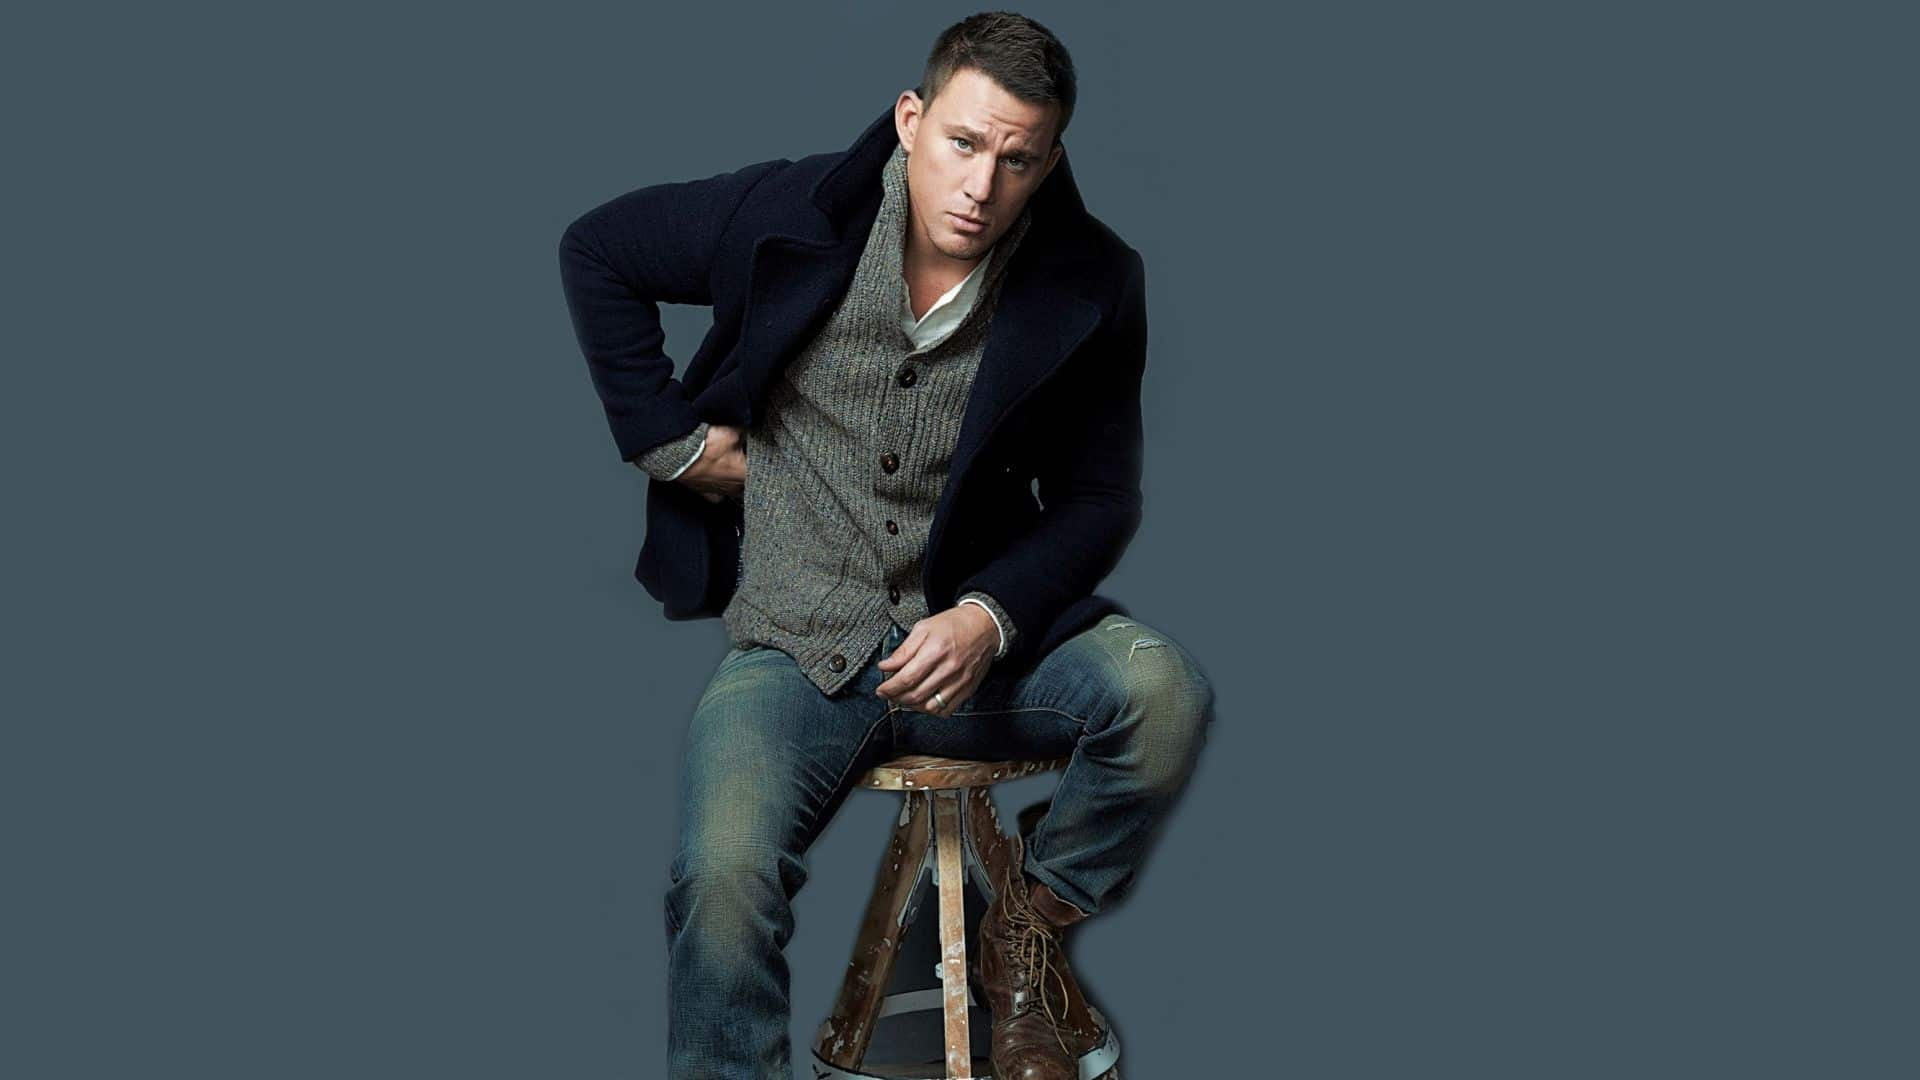 Channing Tatum American Actor, Model, Film Producer, Singer, Dancer